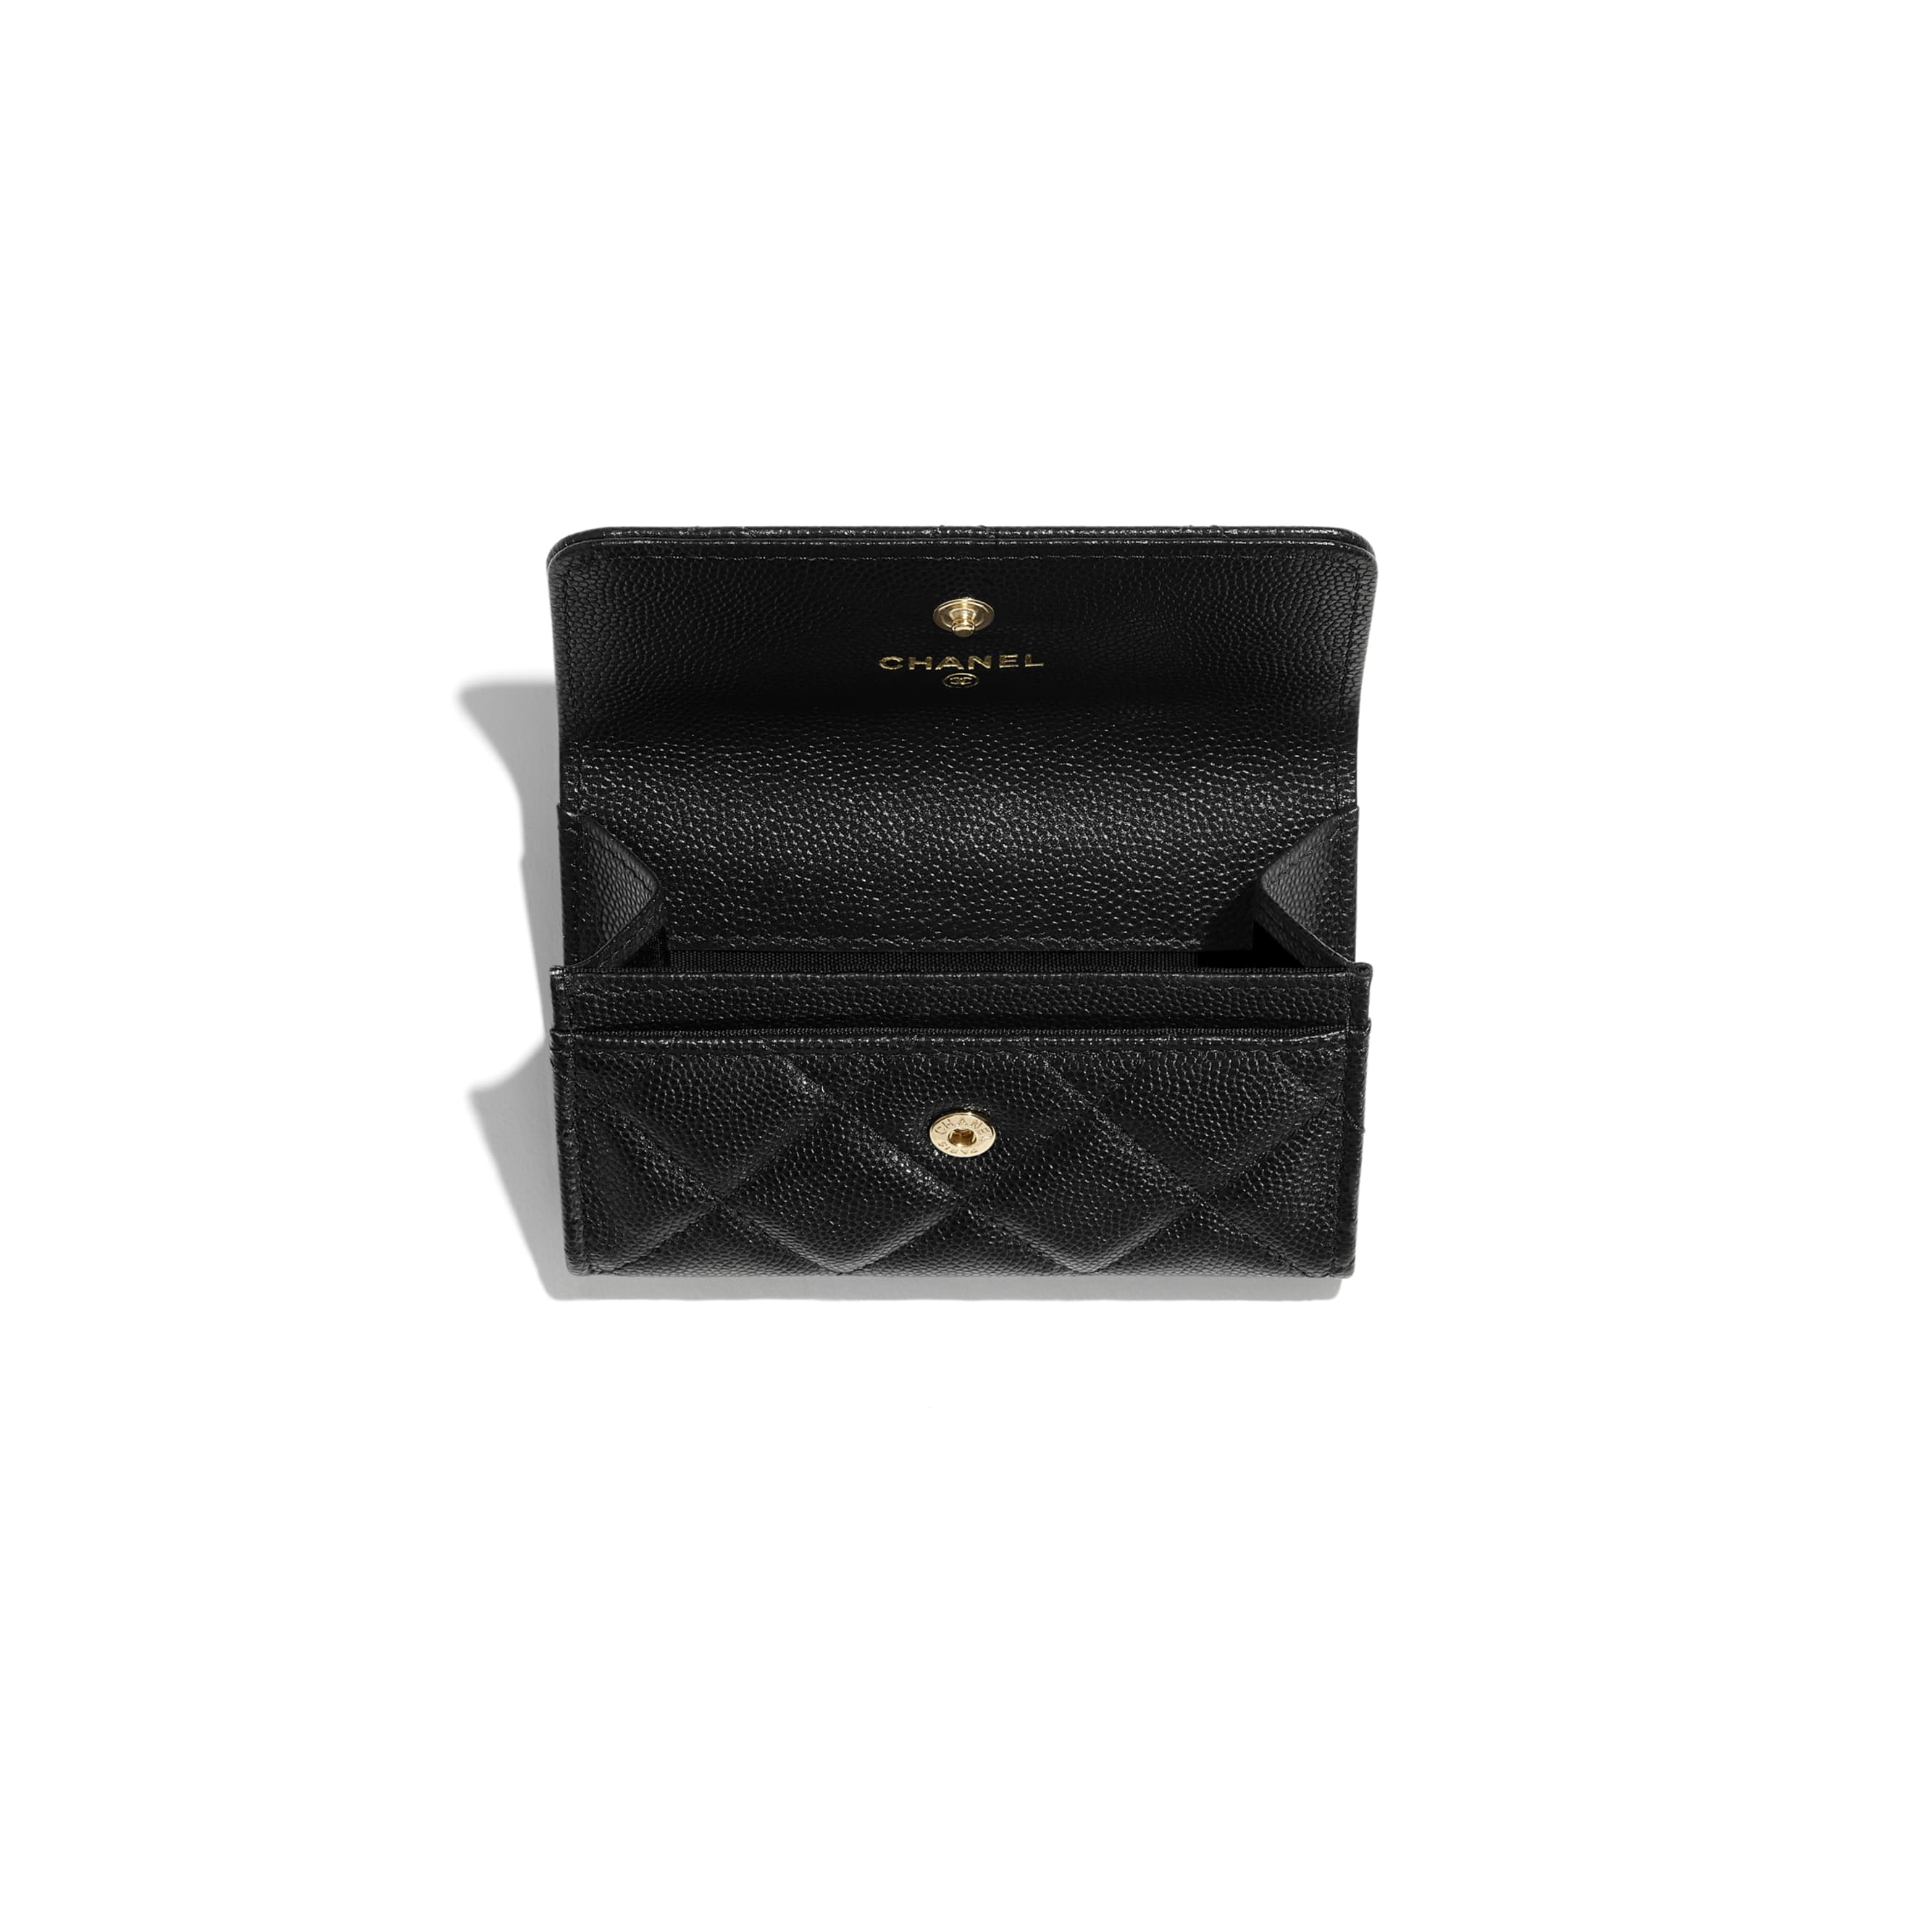 Flap Card Holder - Black - Grained Calfskin & Laquered Gold-Tone Metal - CHANEL - Other view - see standard sized version